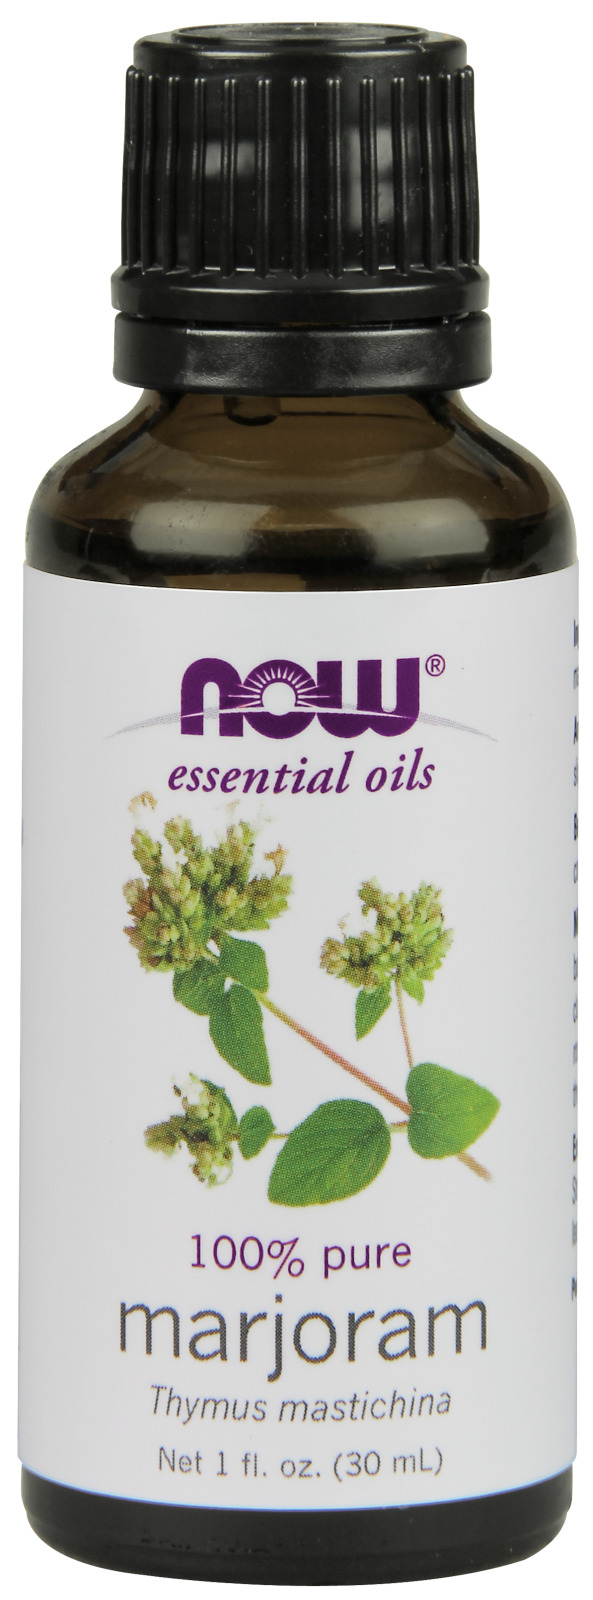 Marjoram Oil 1 fl oz (30 ml) by NOW